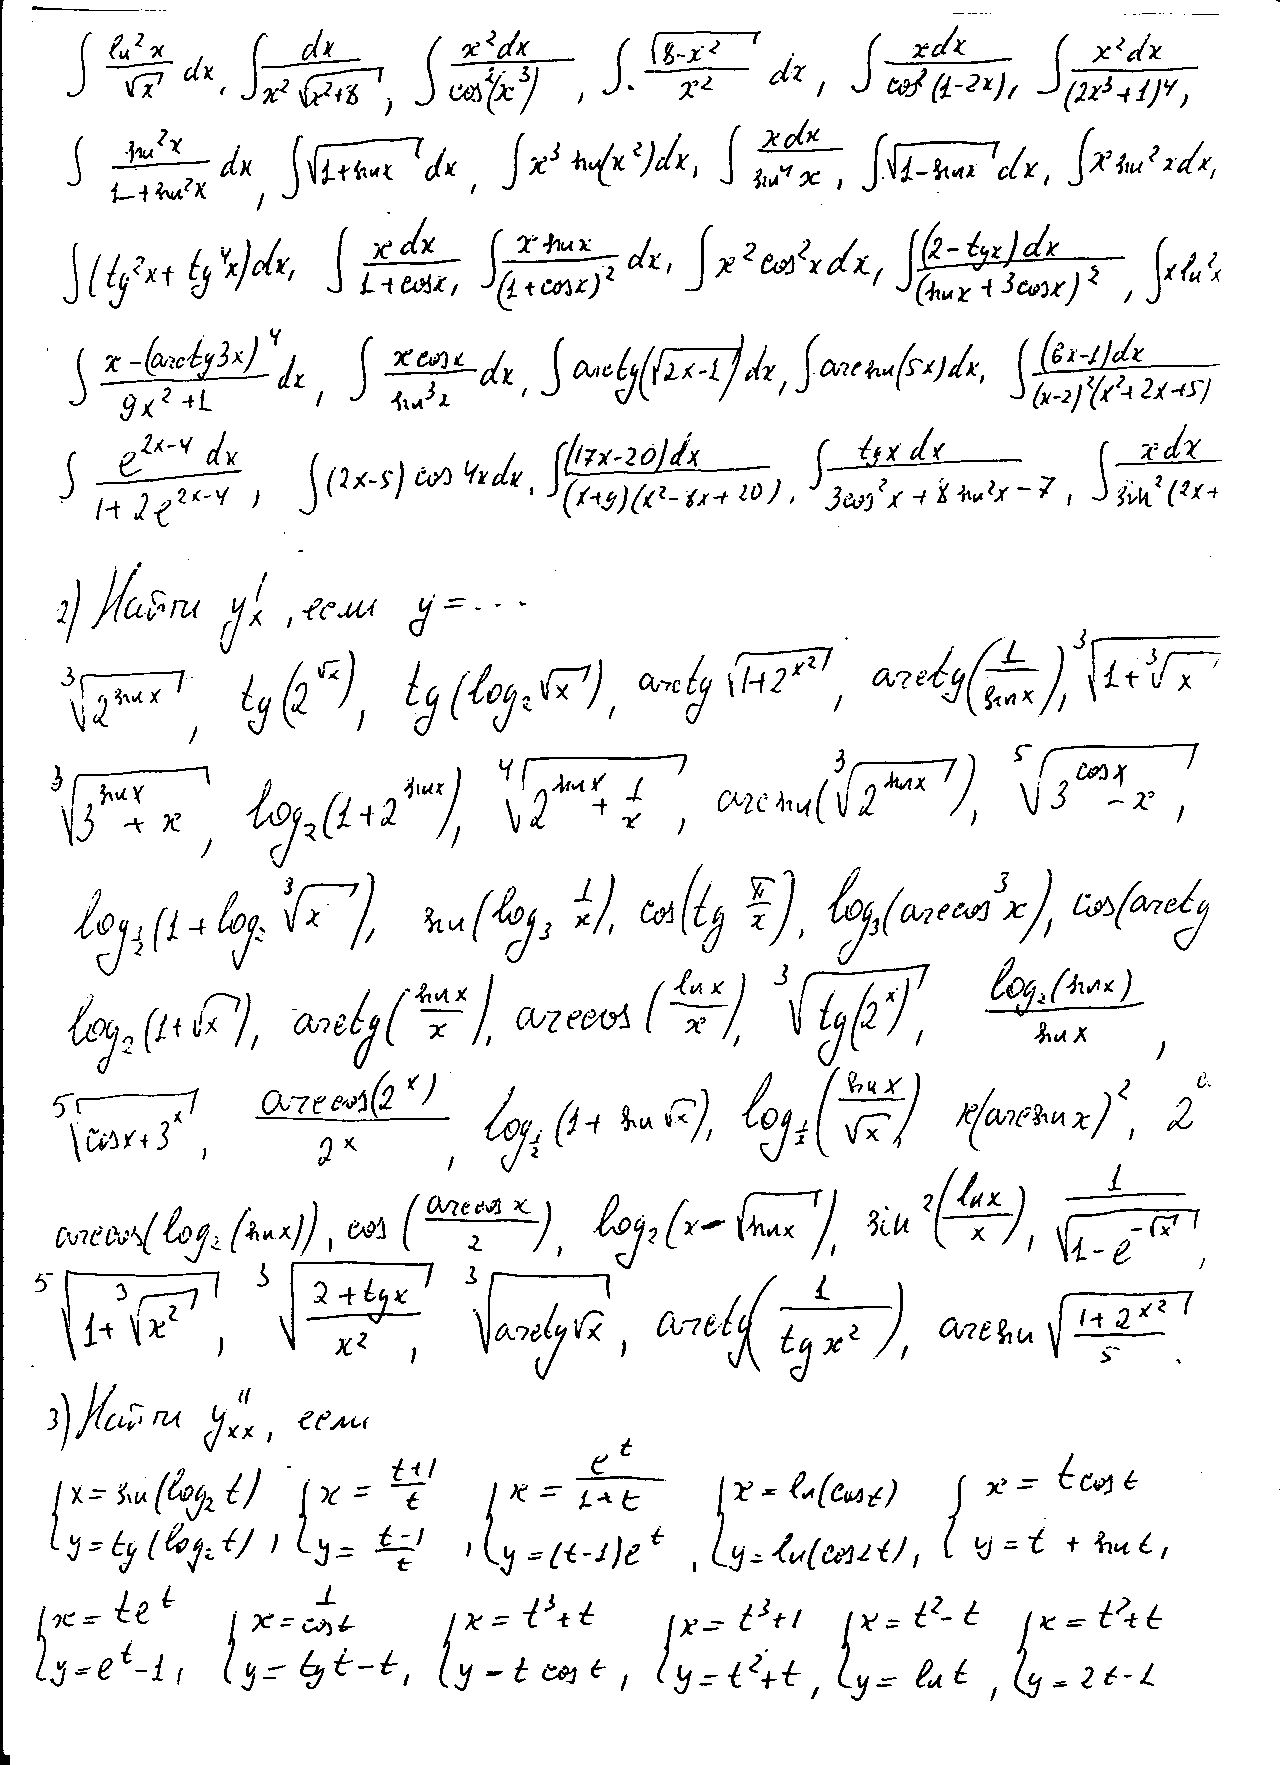 calculus help essay euthanasia this site is designed for high school and college math students a complete set of class notes handouts worksheets powerpoint presentations and practice